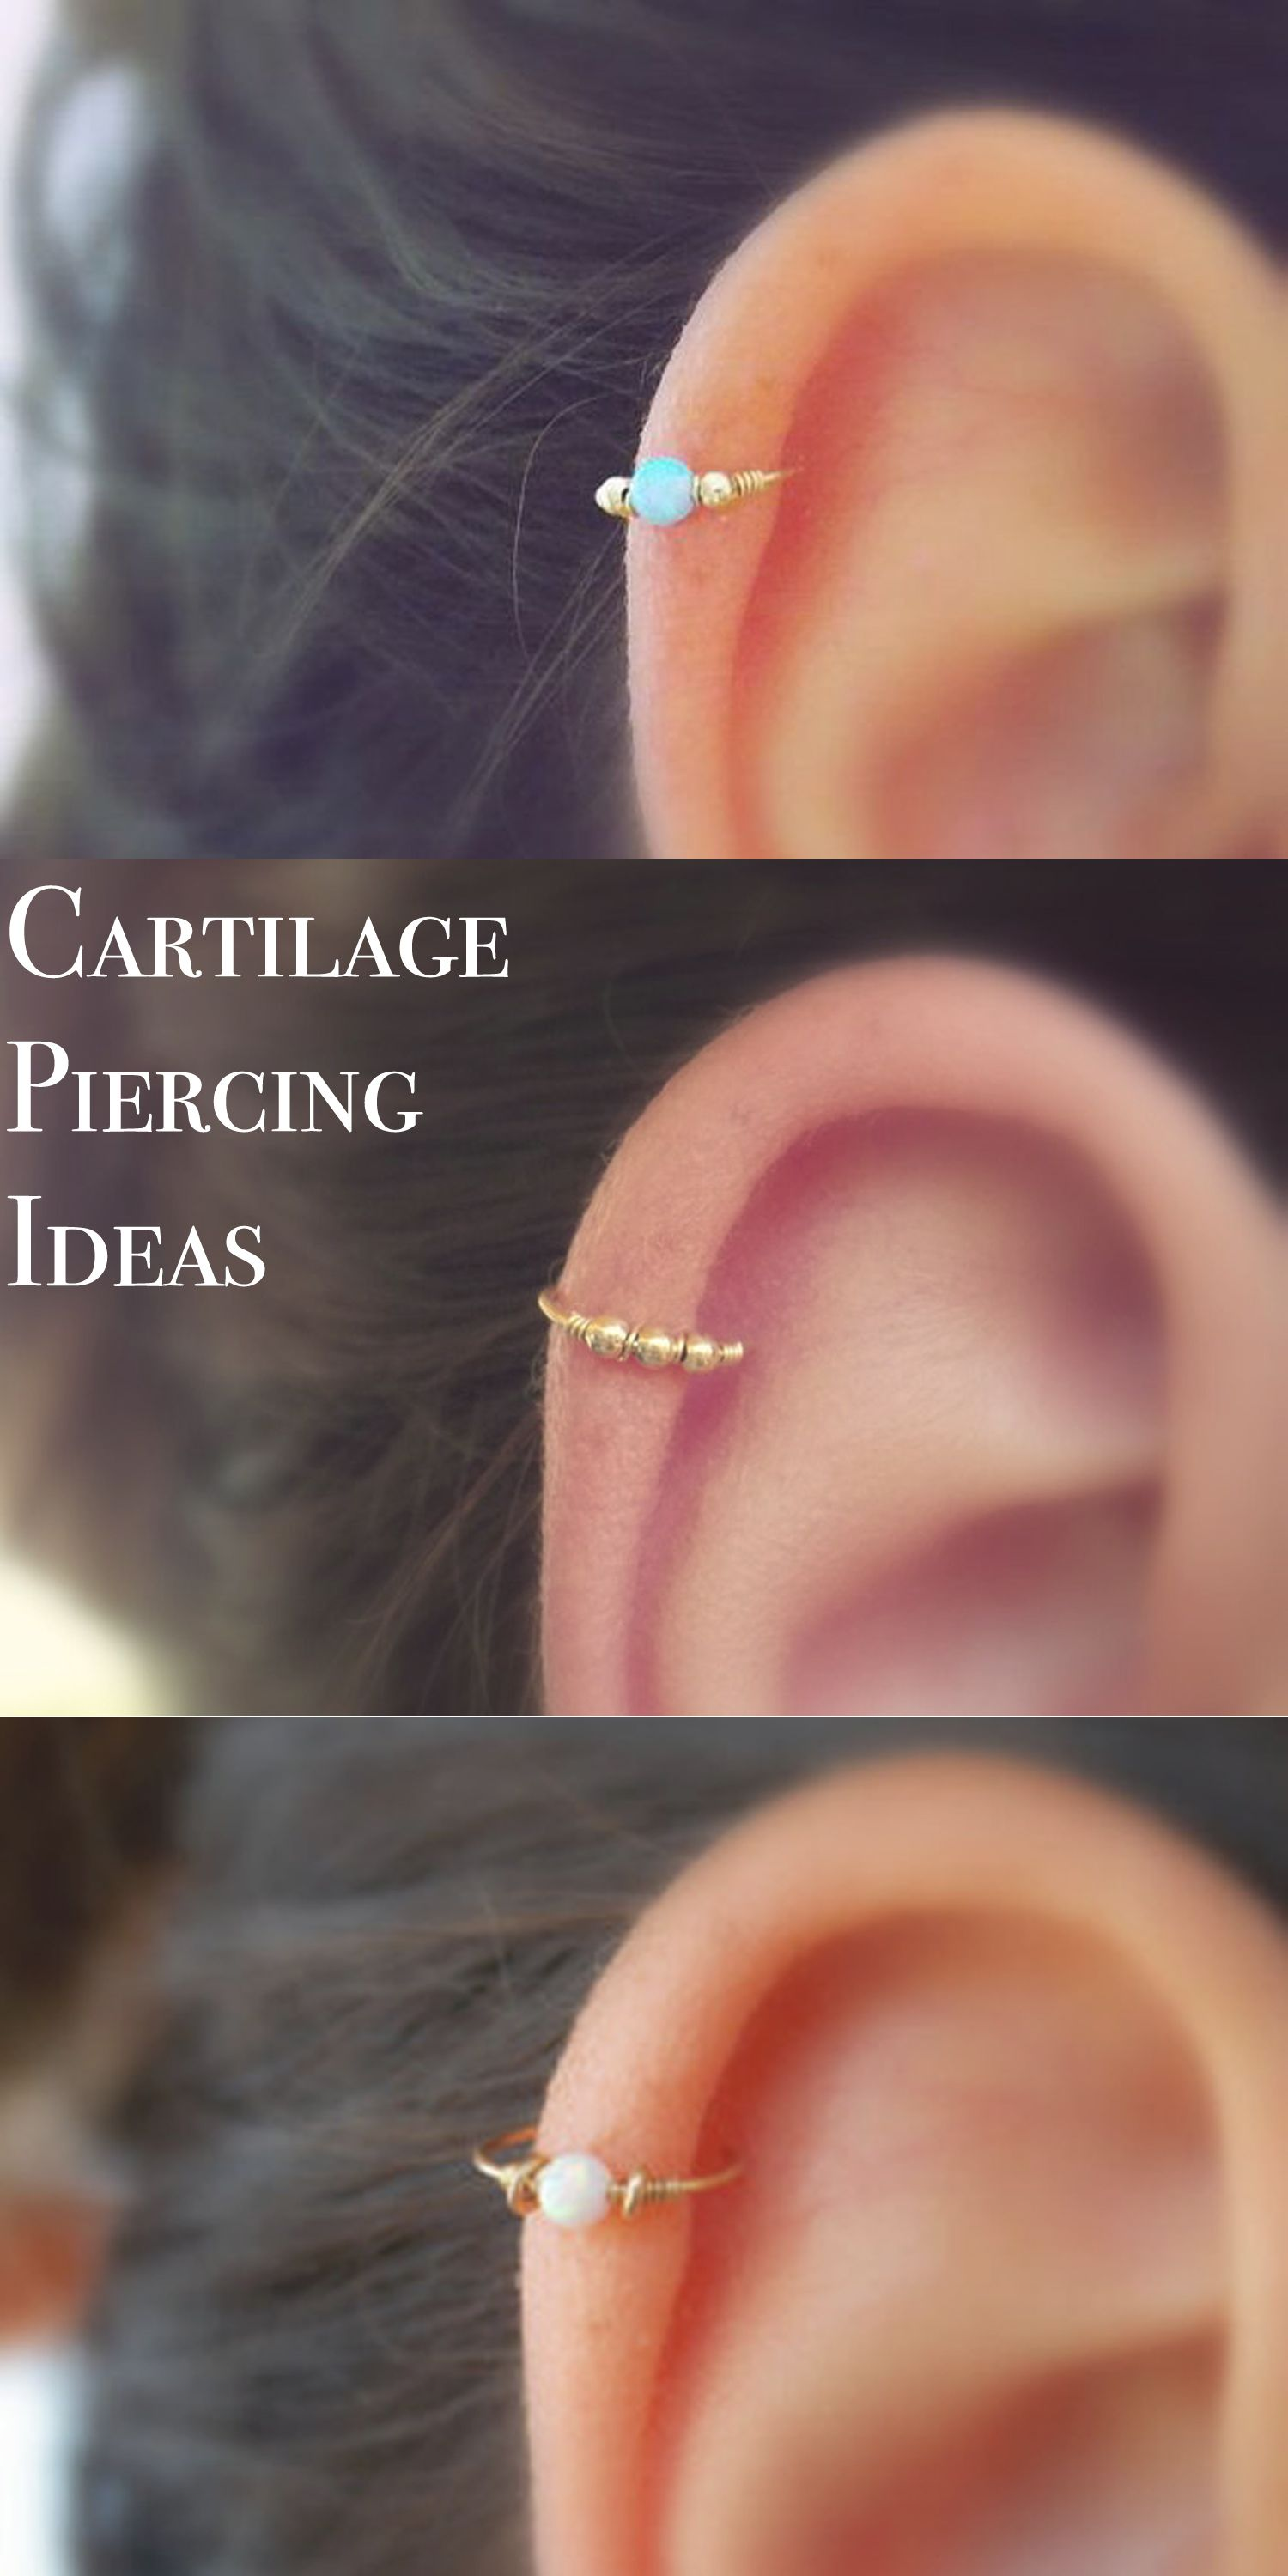 Nose piercing healing  Andromeda Opal Ring Piercing  Cartilage piercing hoop Cartilage